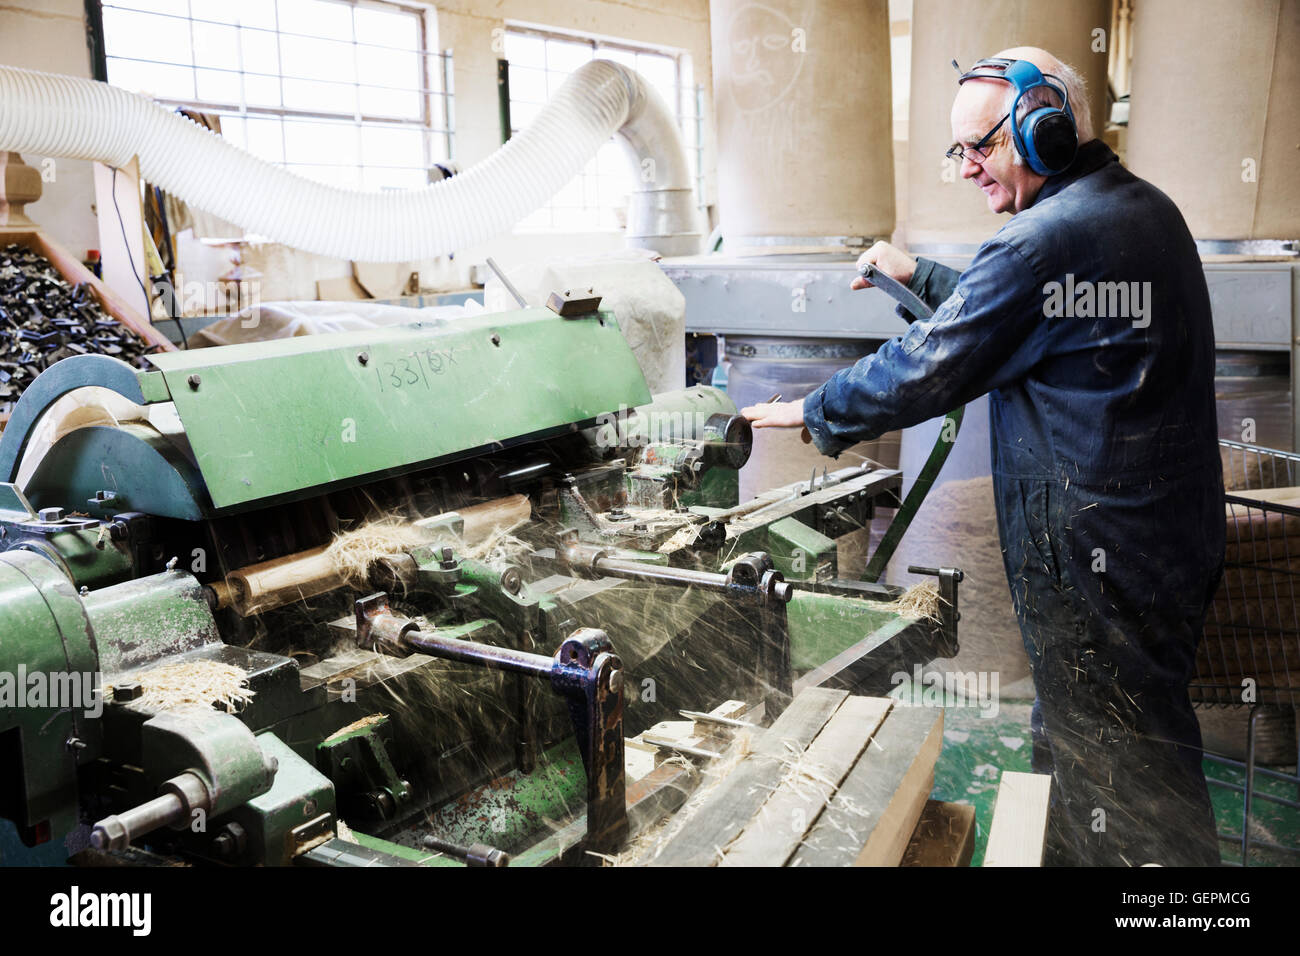 Man standing in a carpentry workshop, wearing hearing protectors, working at a woodworking machine. - Stock Image